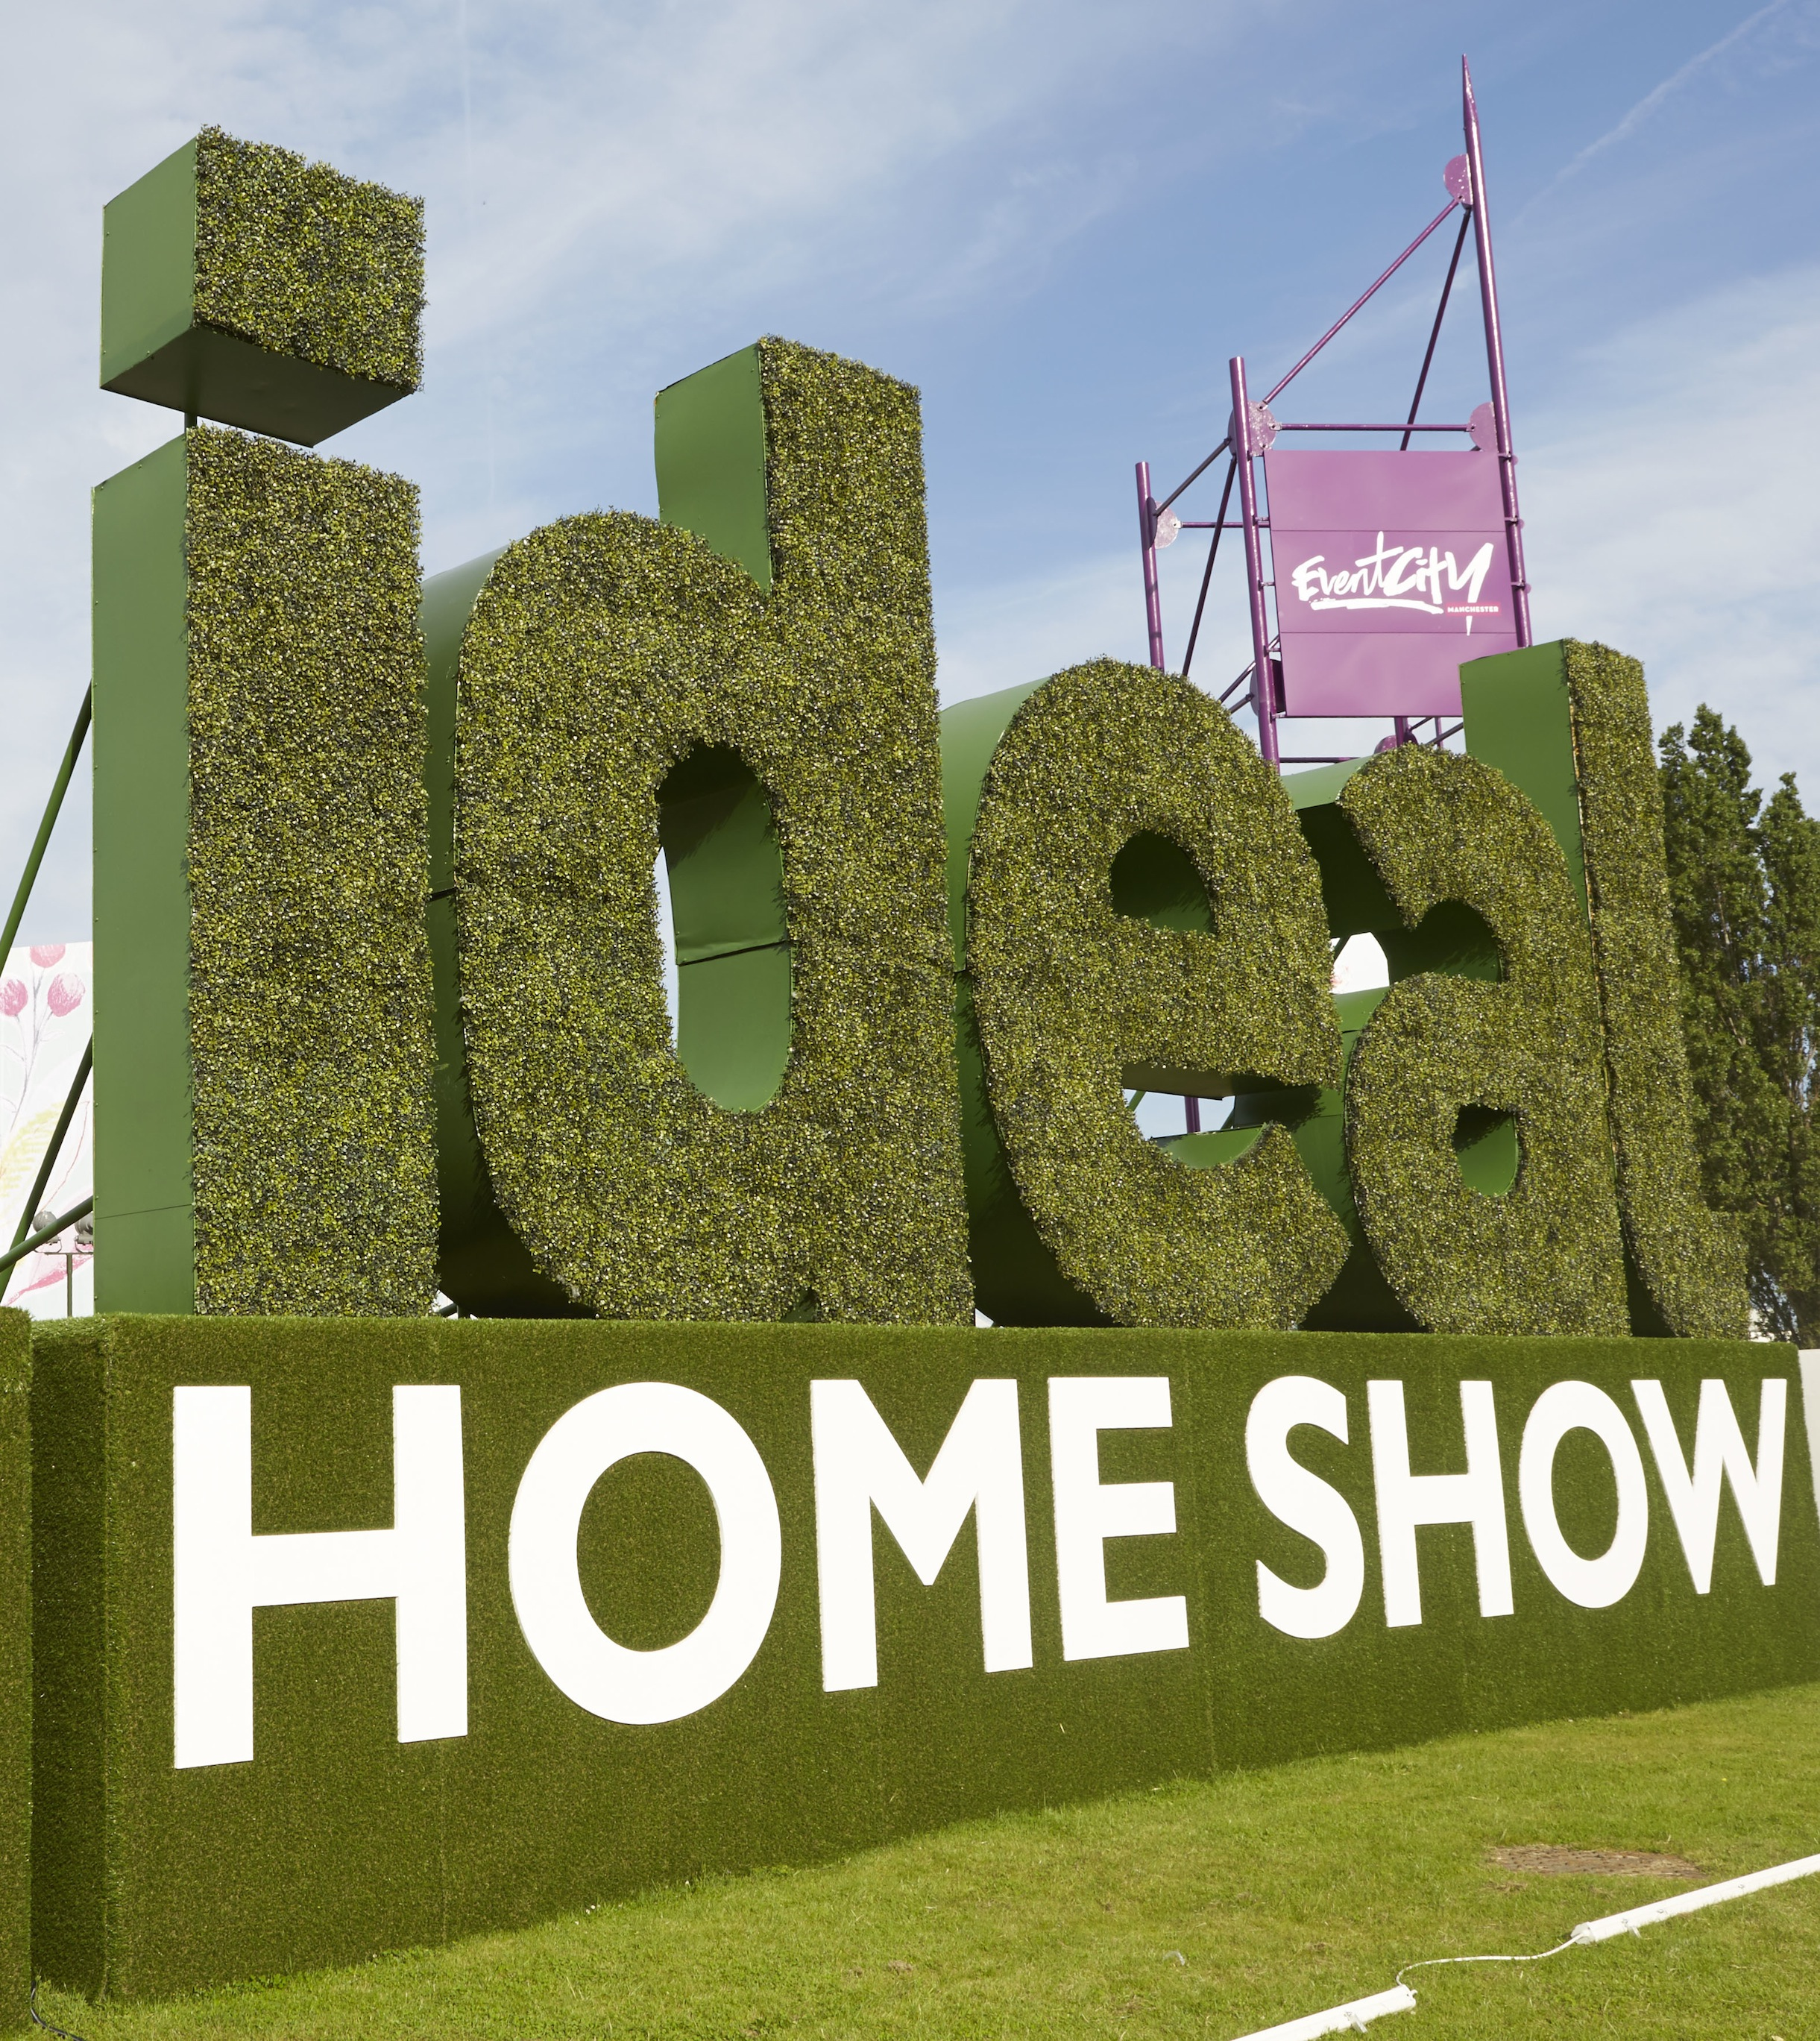 ideal home show manchester been there eaten thatbeen there eaten